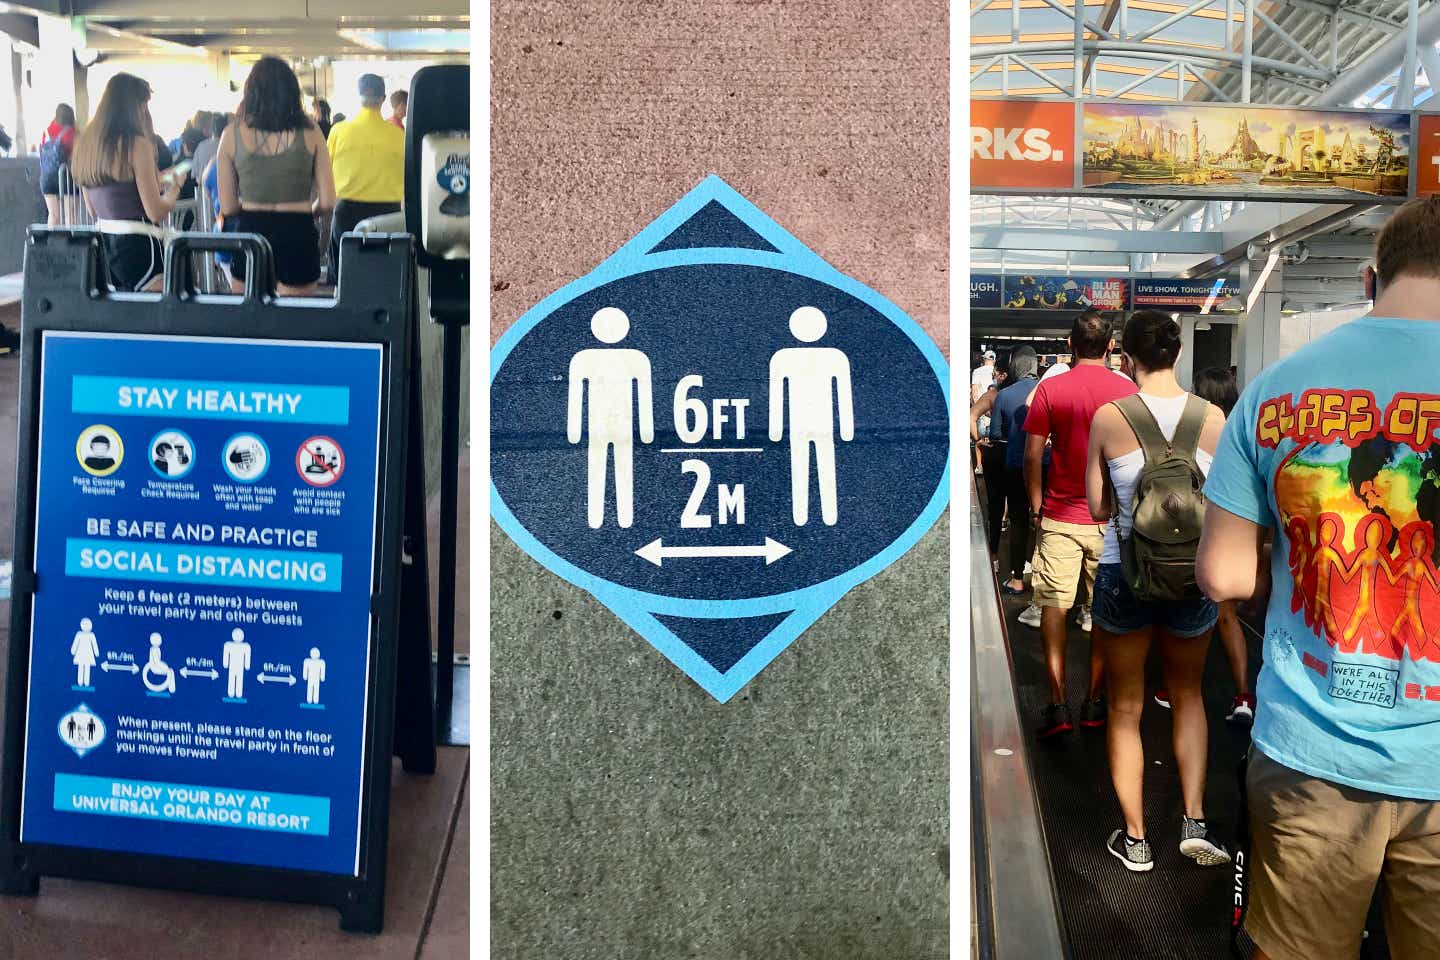 Left: Safety sign enforcing park Safety Measures. Center: decal on floor indicates guests maintain social distance of 6 ft. or 2 M. Right: Guests are lined up to receive temperature check prior to park entrance.